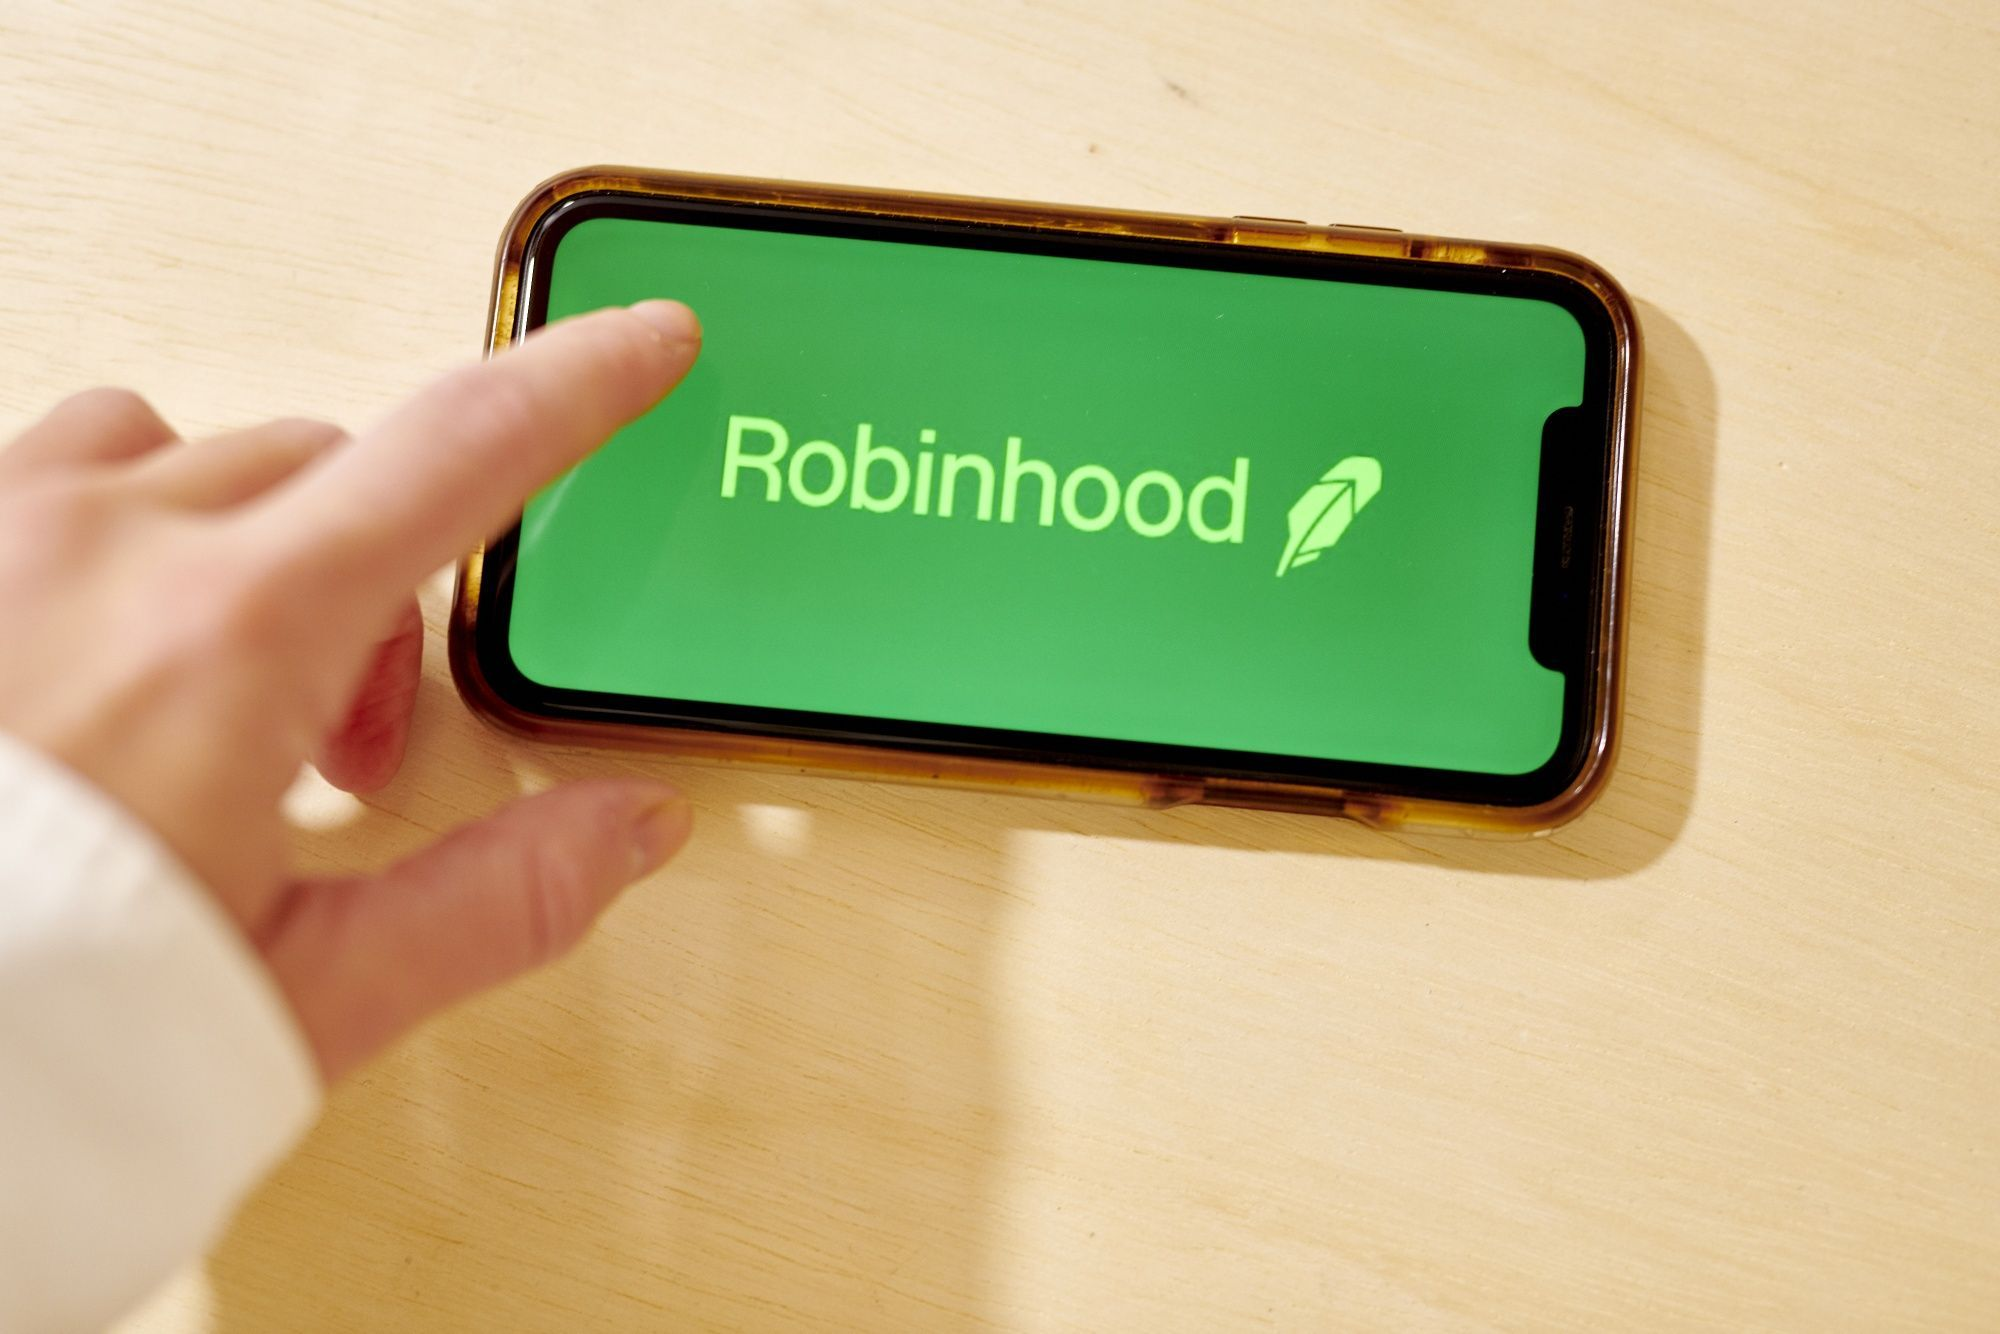 Robinhood Pays Settlement, but Gamification Remains a Concern